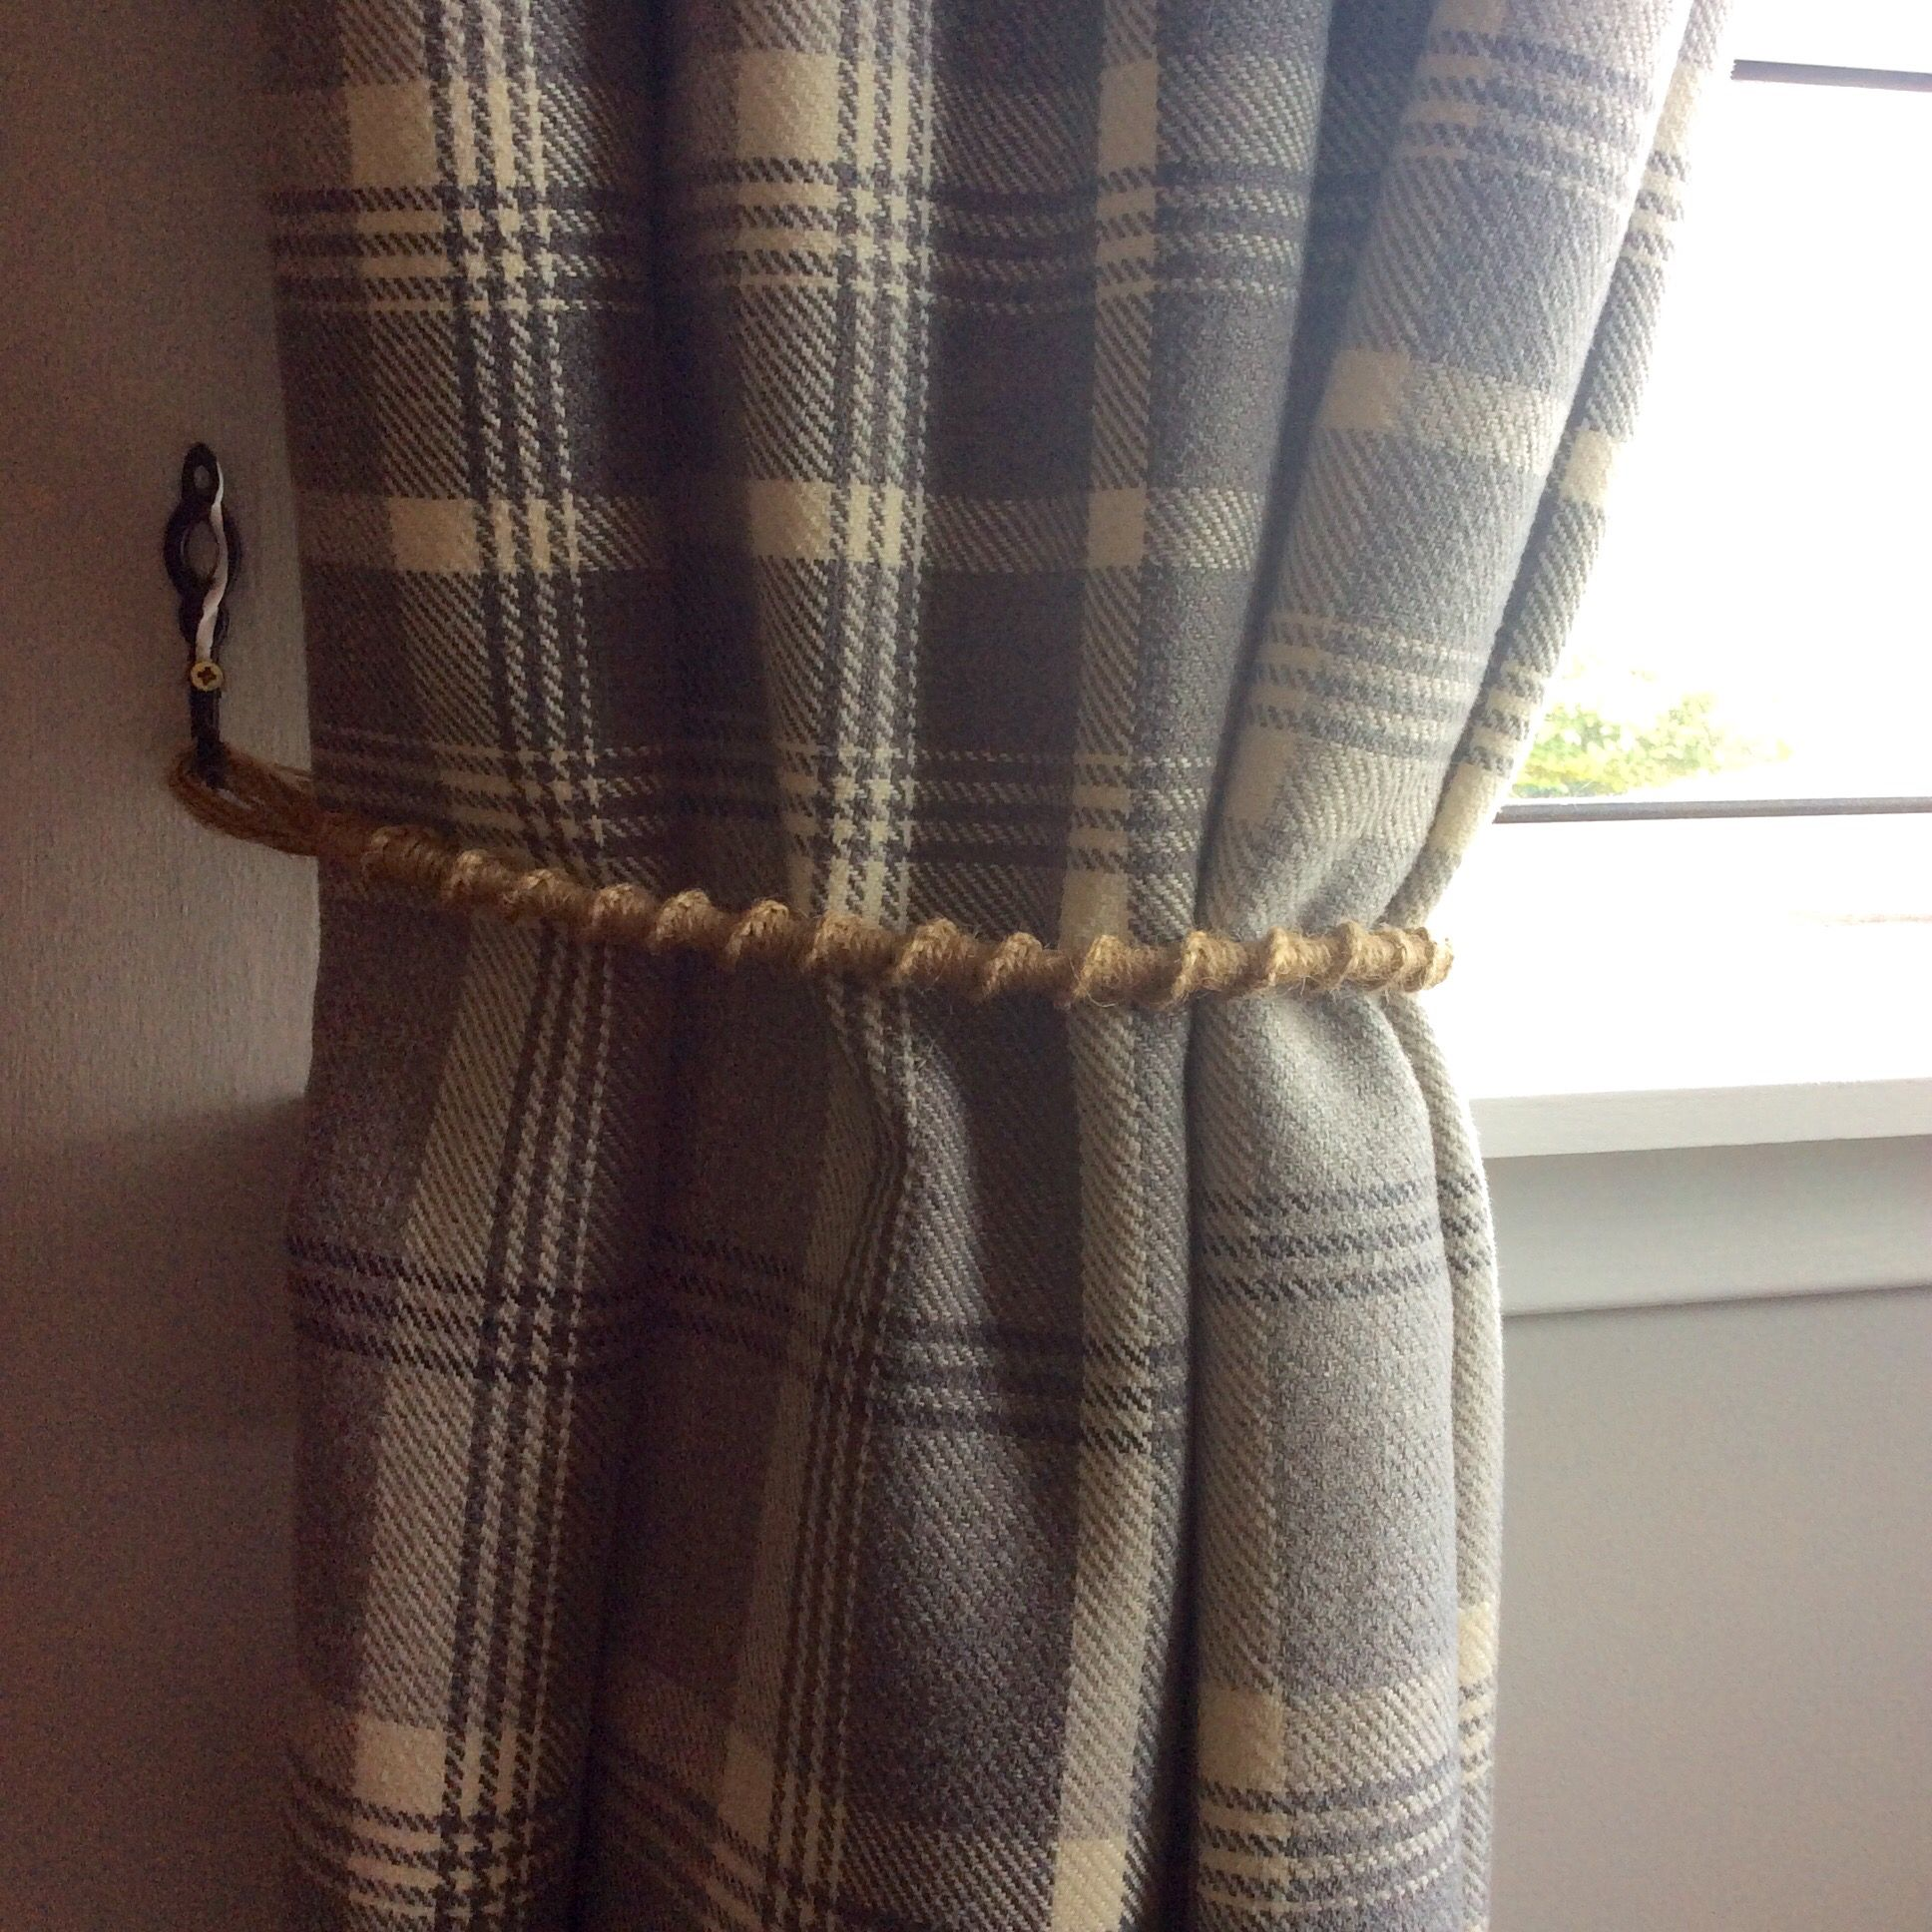 Diy Curtain Tie Backs I Made These From Garden Twine Using The